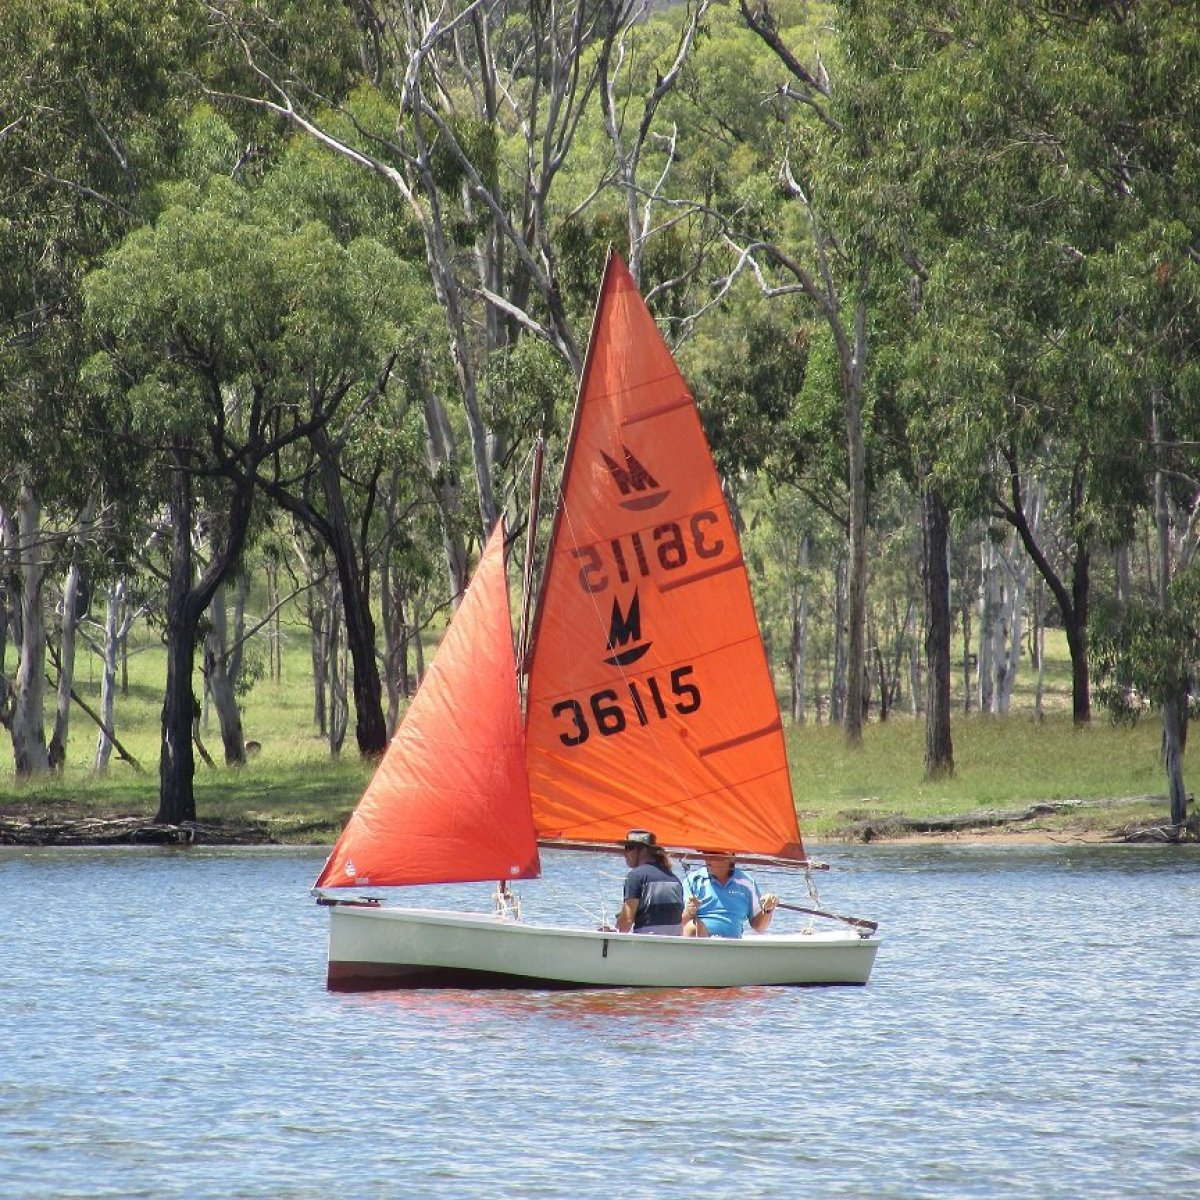 Classic Dinghy - row, sail or motor